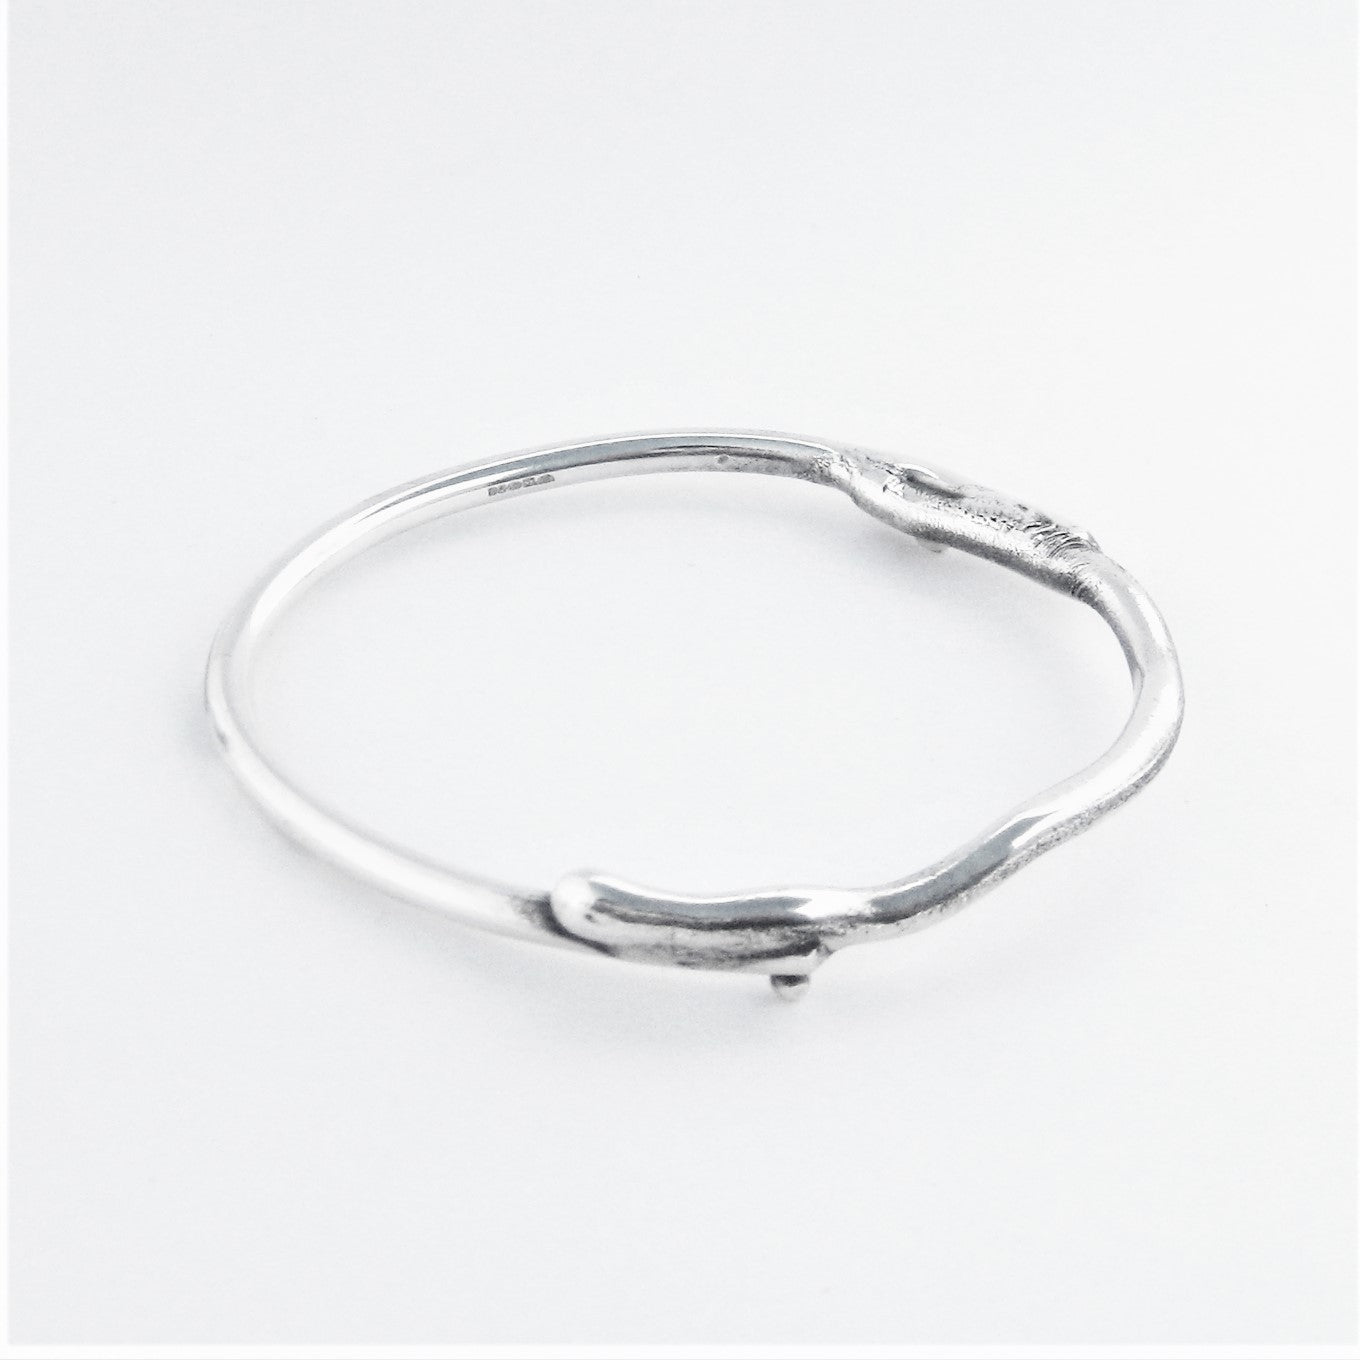 Melt and ball Bangle